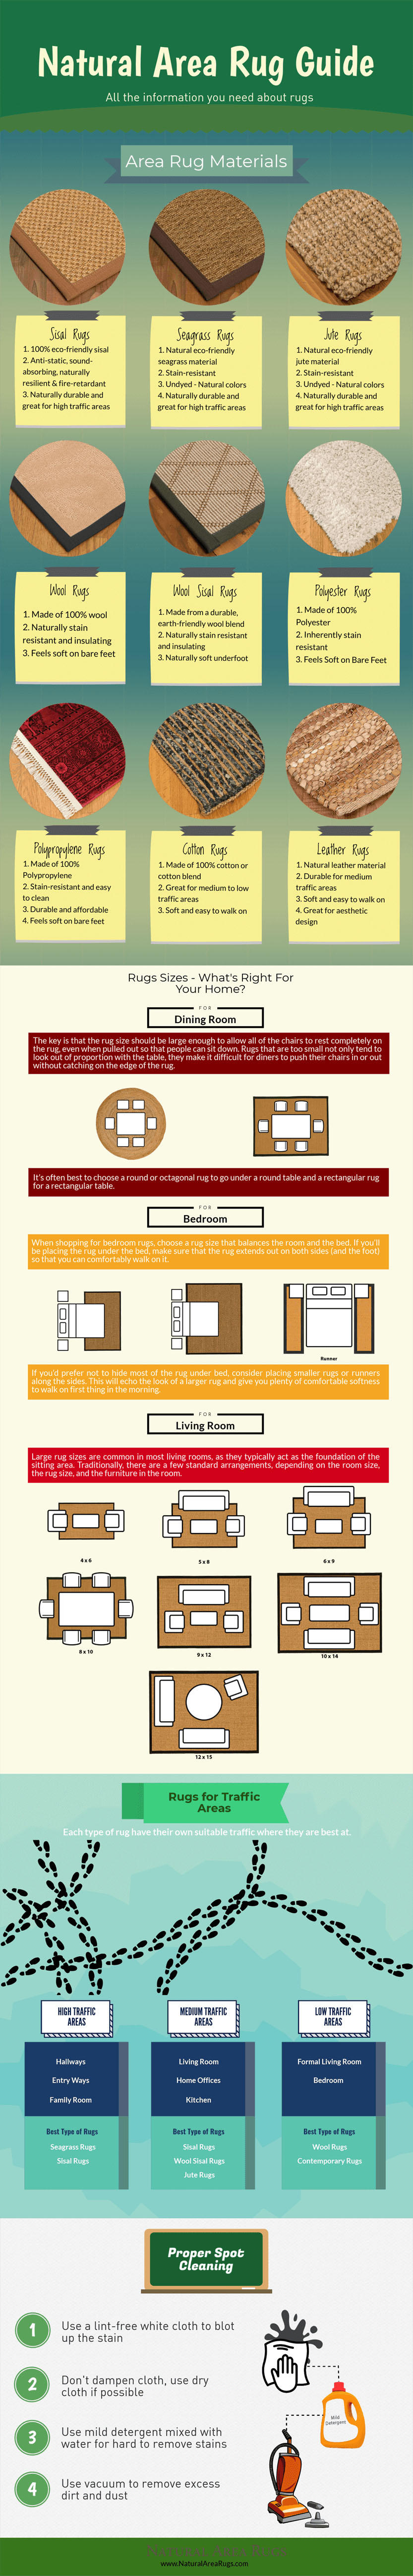 Natural Area Rug Guide